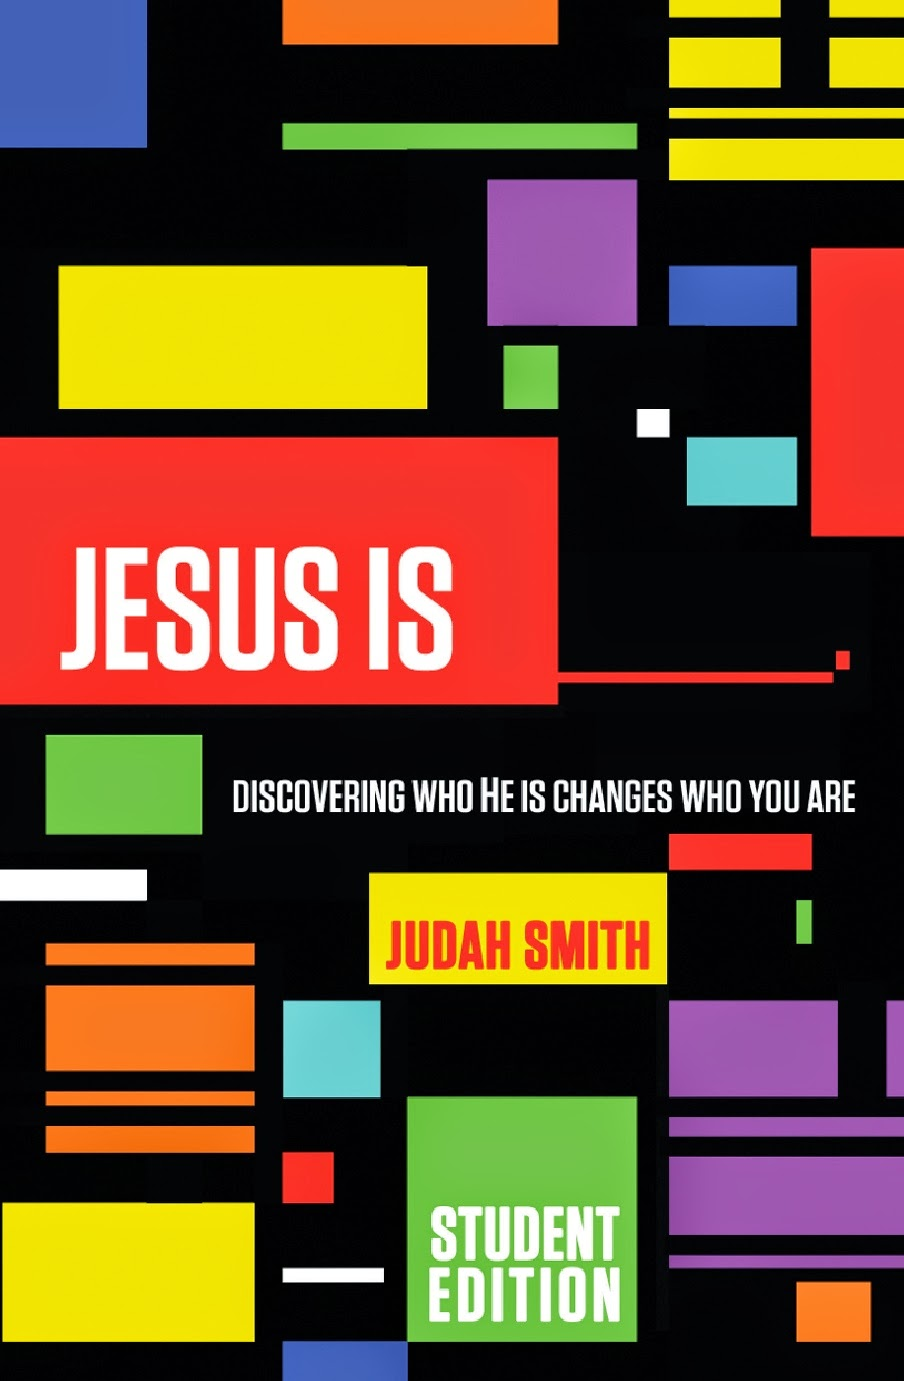 Jesus Is (Student Edition) by Judah Smith